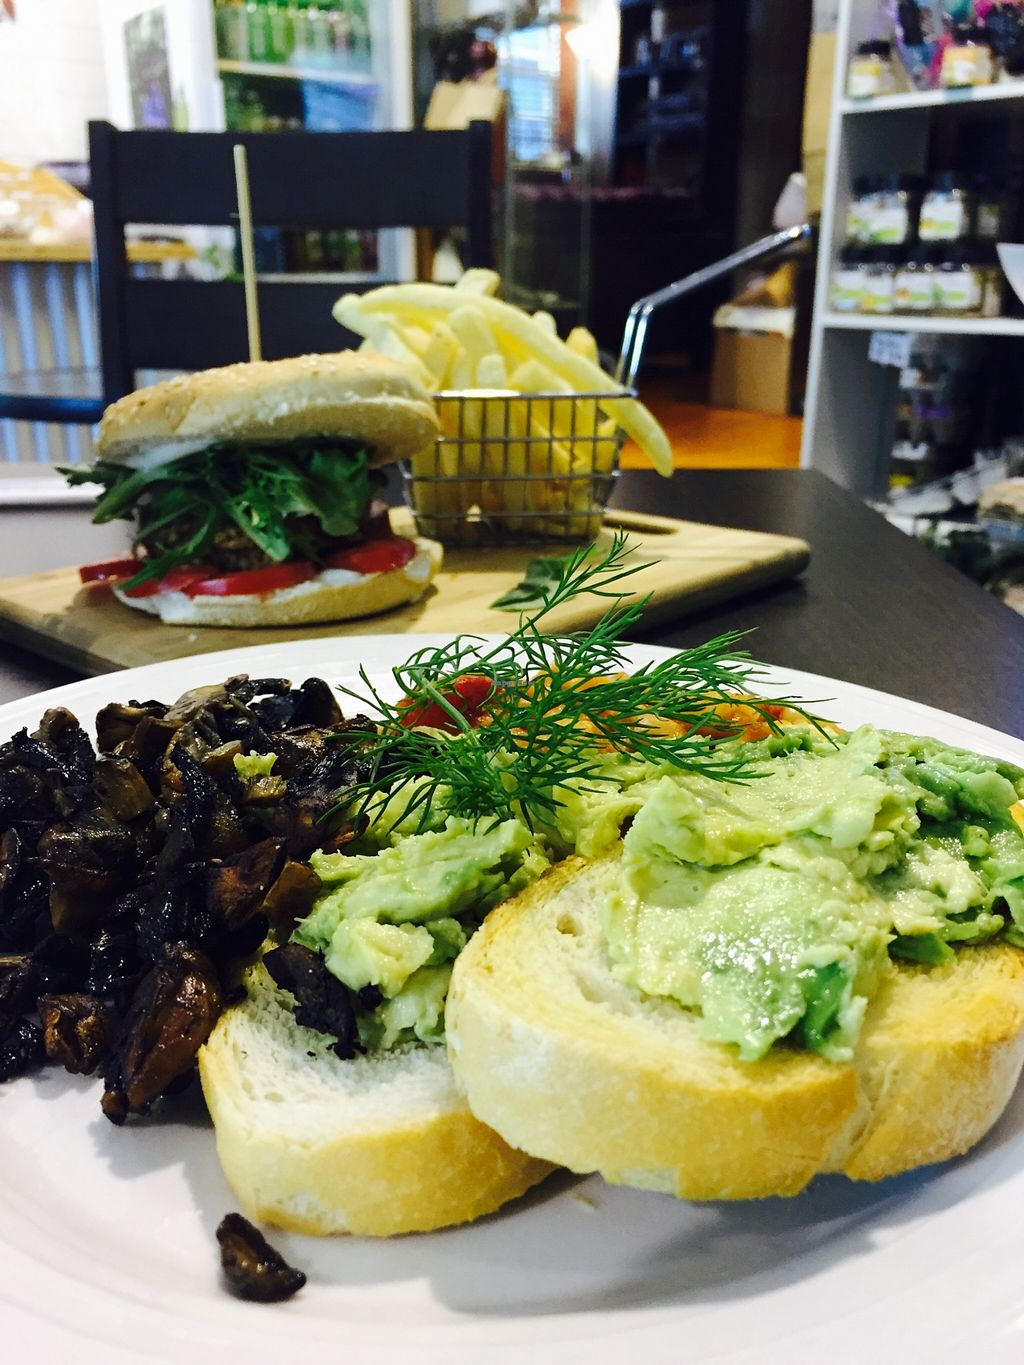 """Photo of CLOSED: Abitza  by <a href=""""/members/profile/karlaess"""">karlaess</a> <br/>Avocado on toast with a side of mushrooms and organic baked beans <br/> December 11, 2015  - <a href='/contact/abuse/image/66922/127986'>Report</a>"""